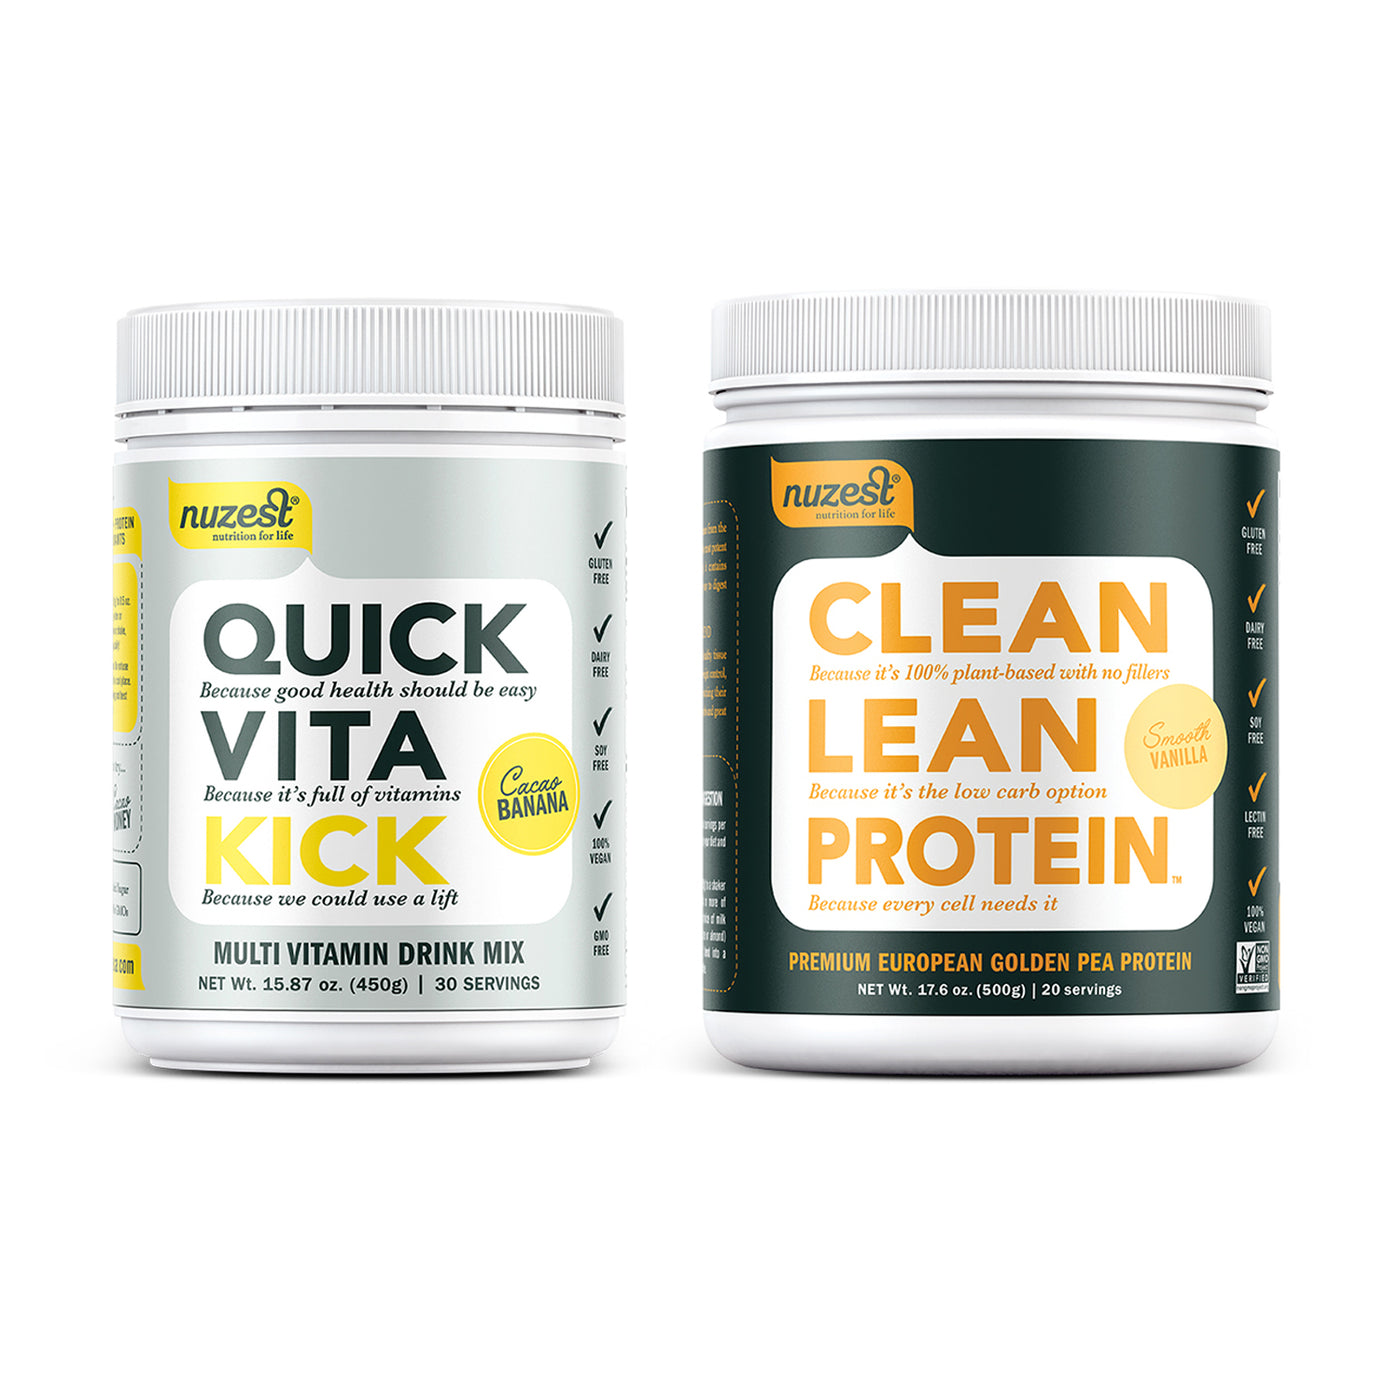 Quick Vita Kick Multivitamin Powder